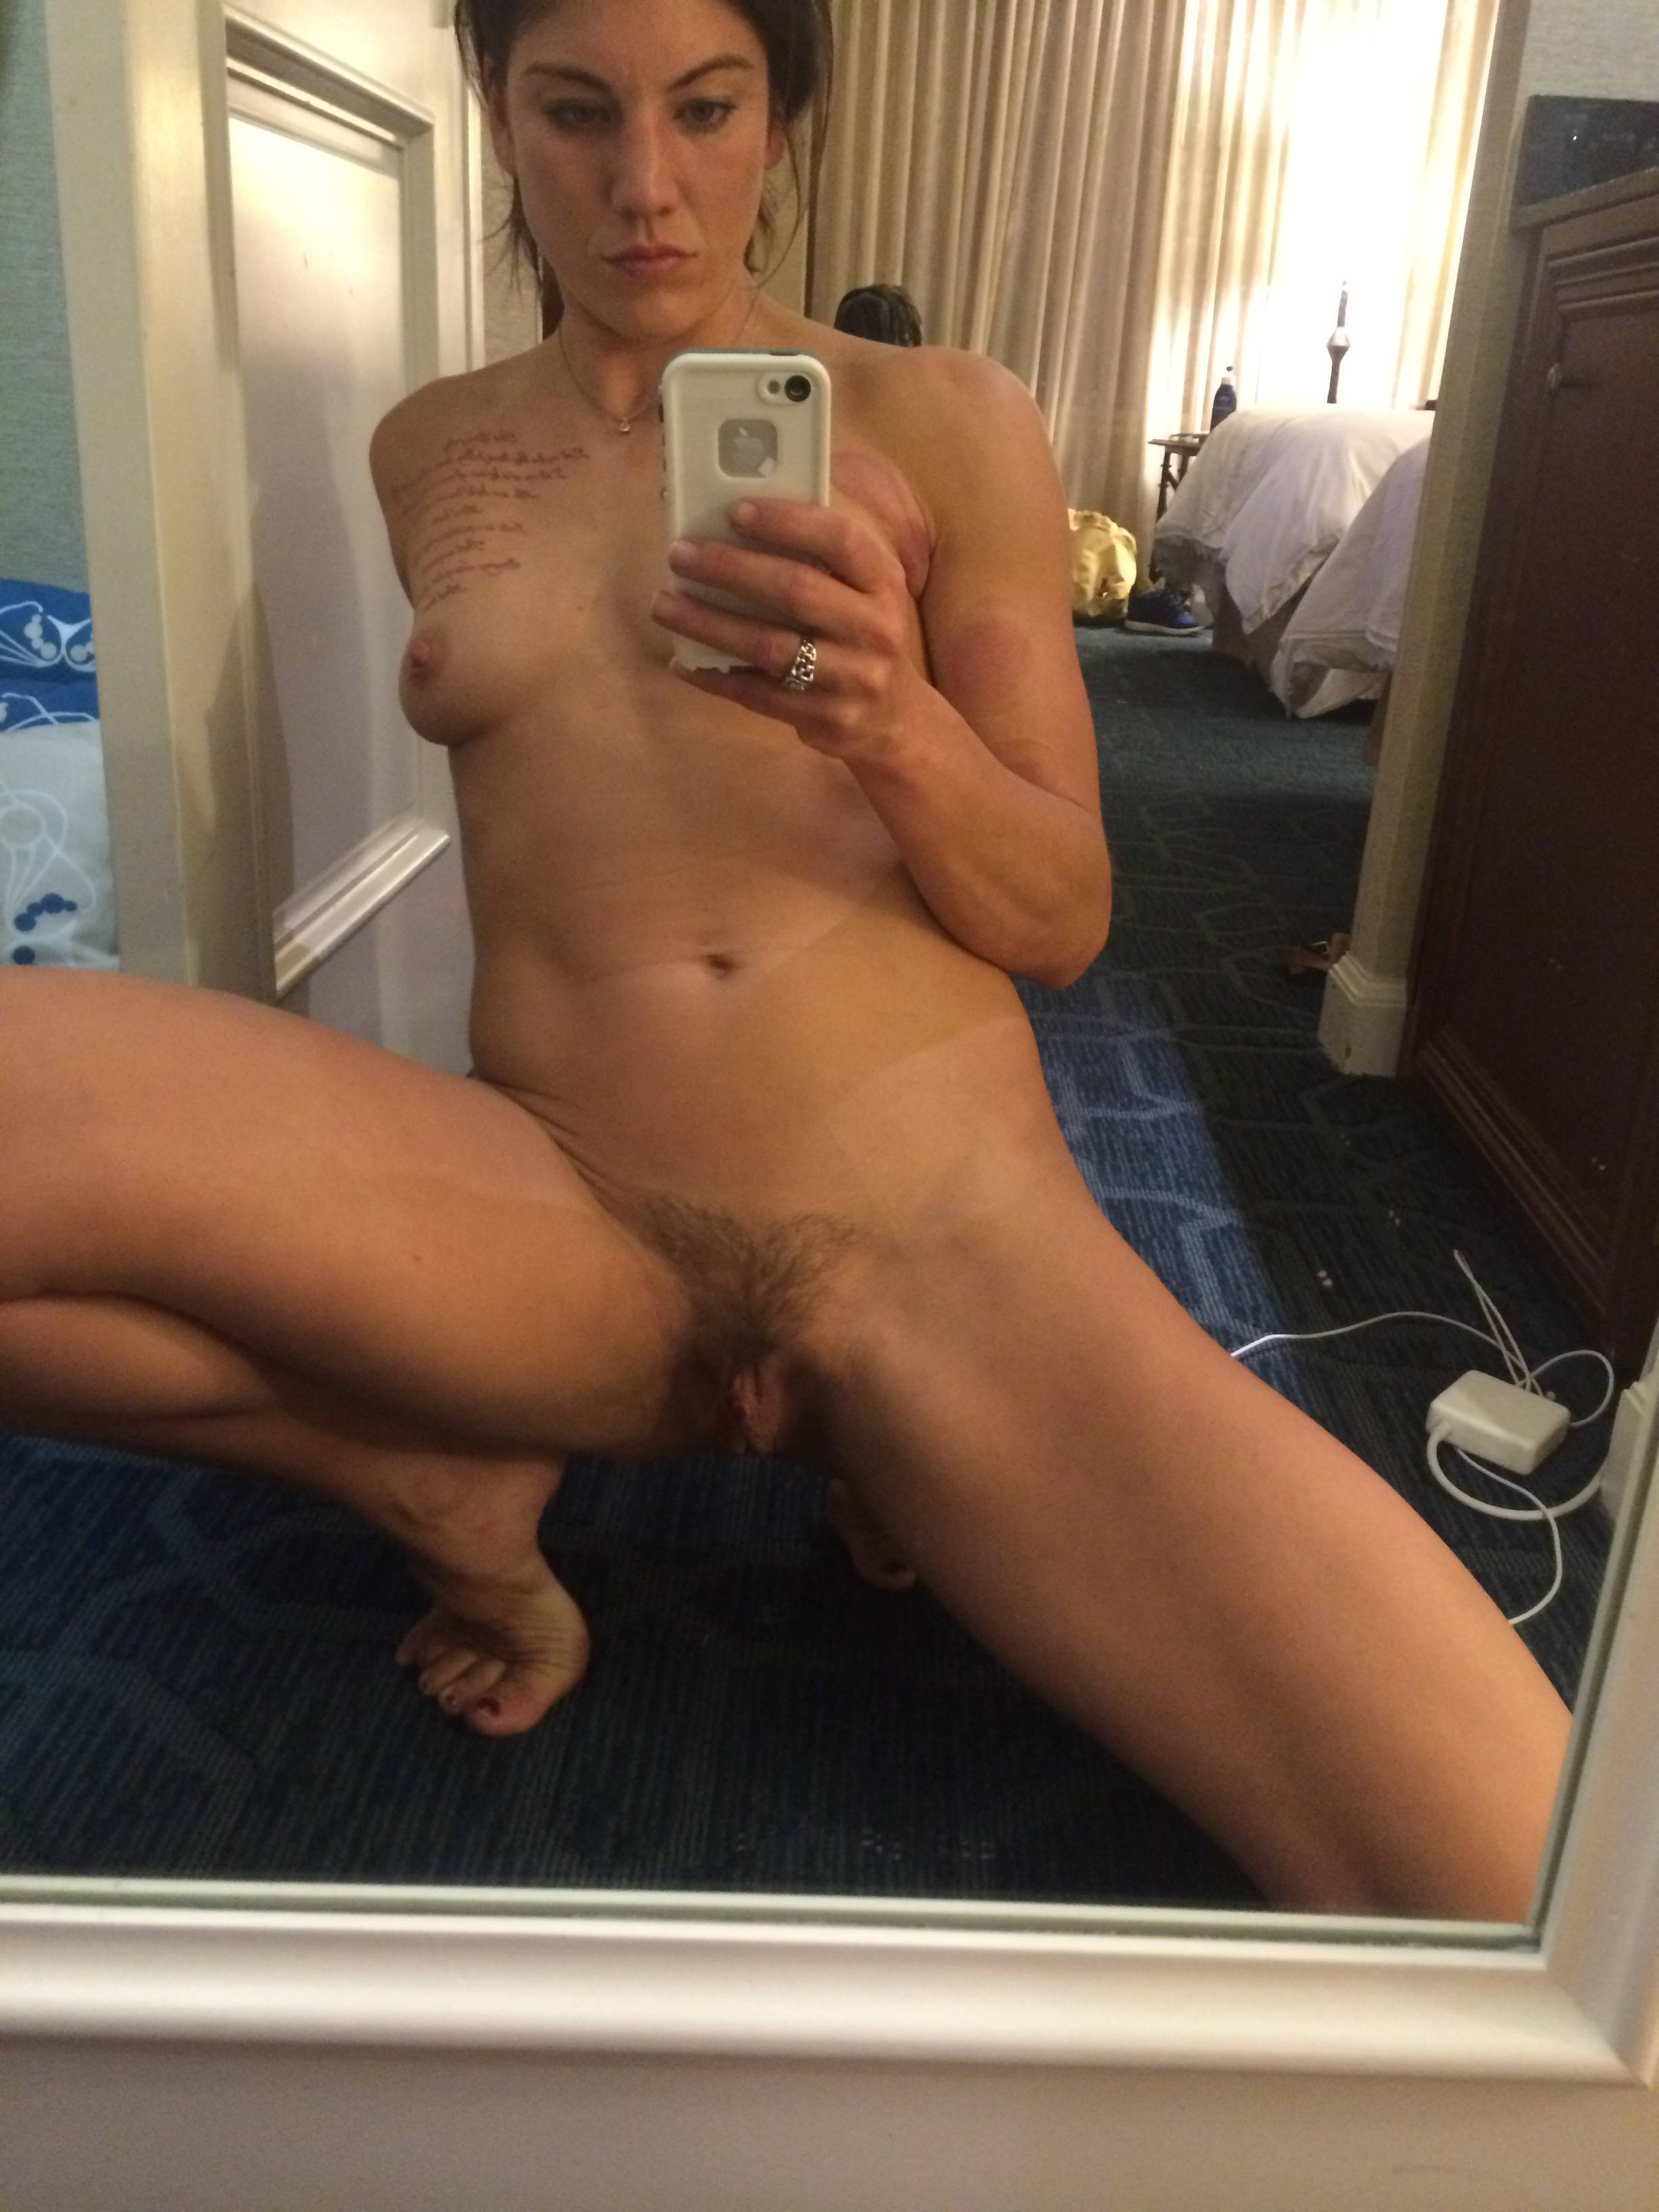 New Hope Solo Nude Pics Leaked -  16 New Pics-5858